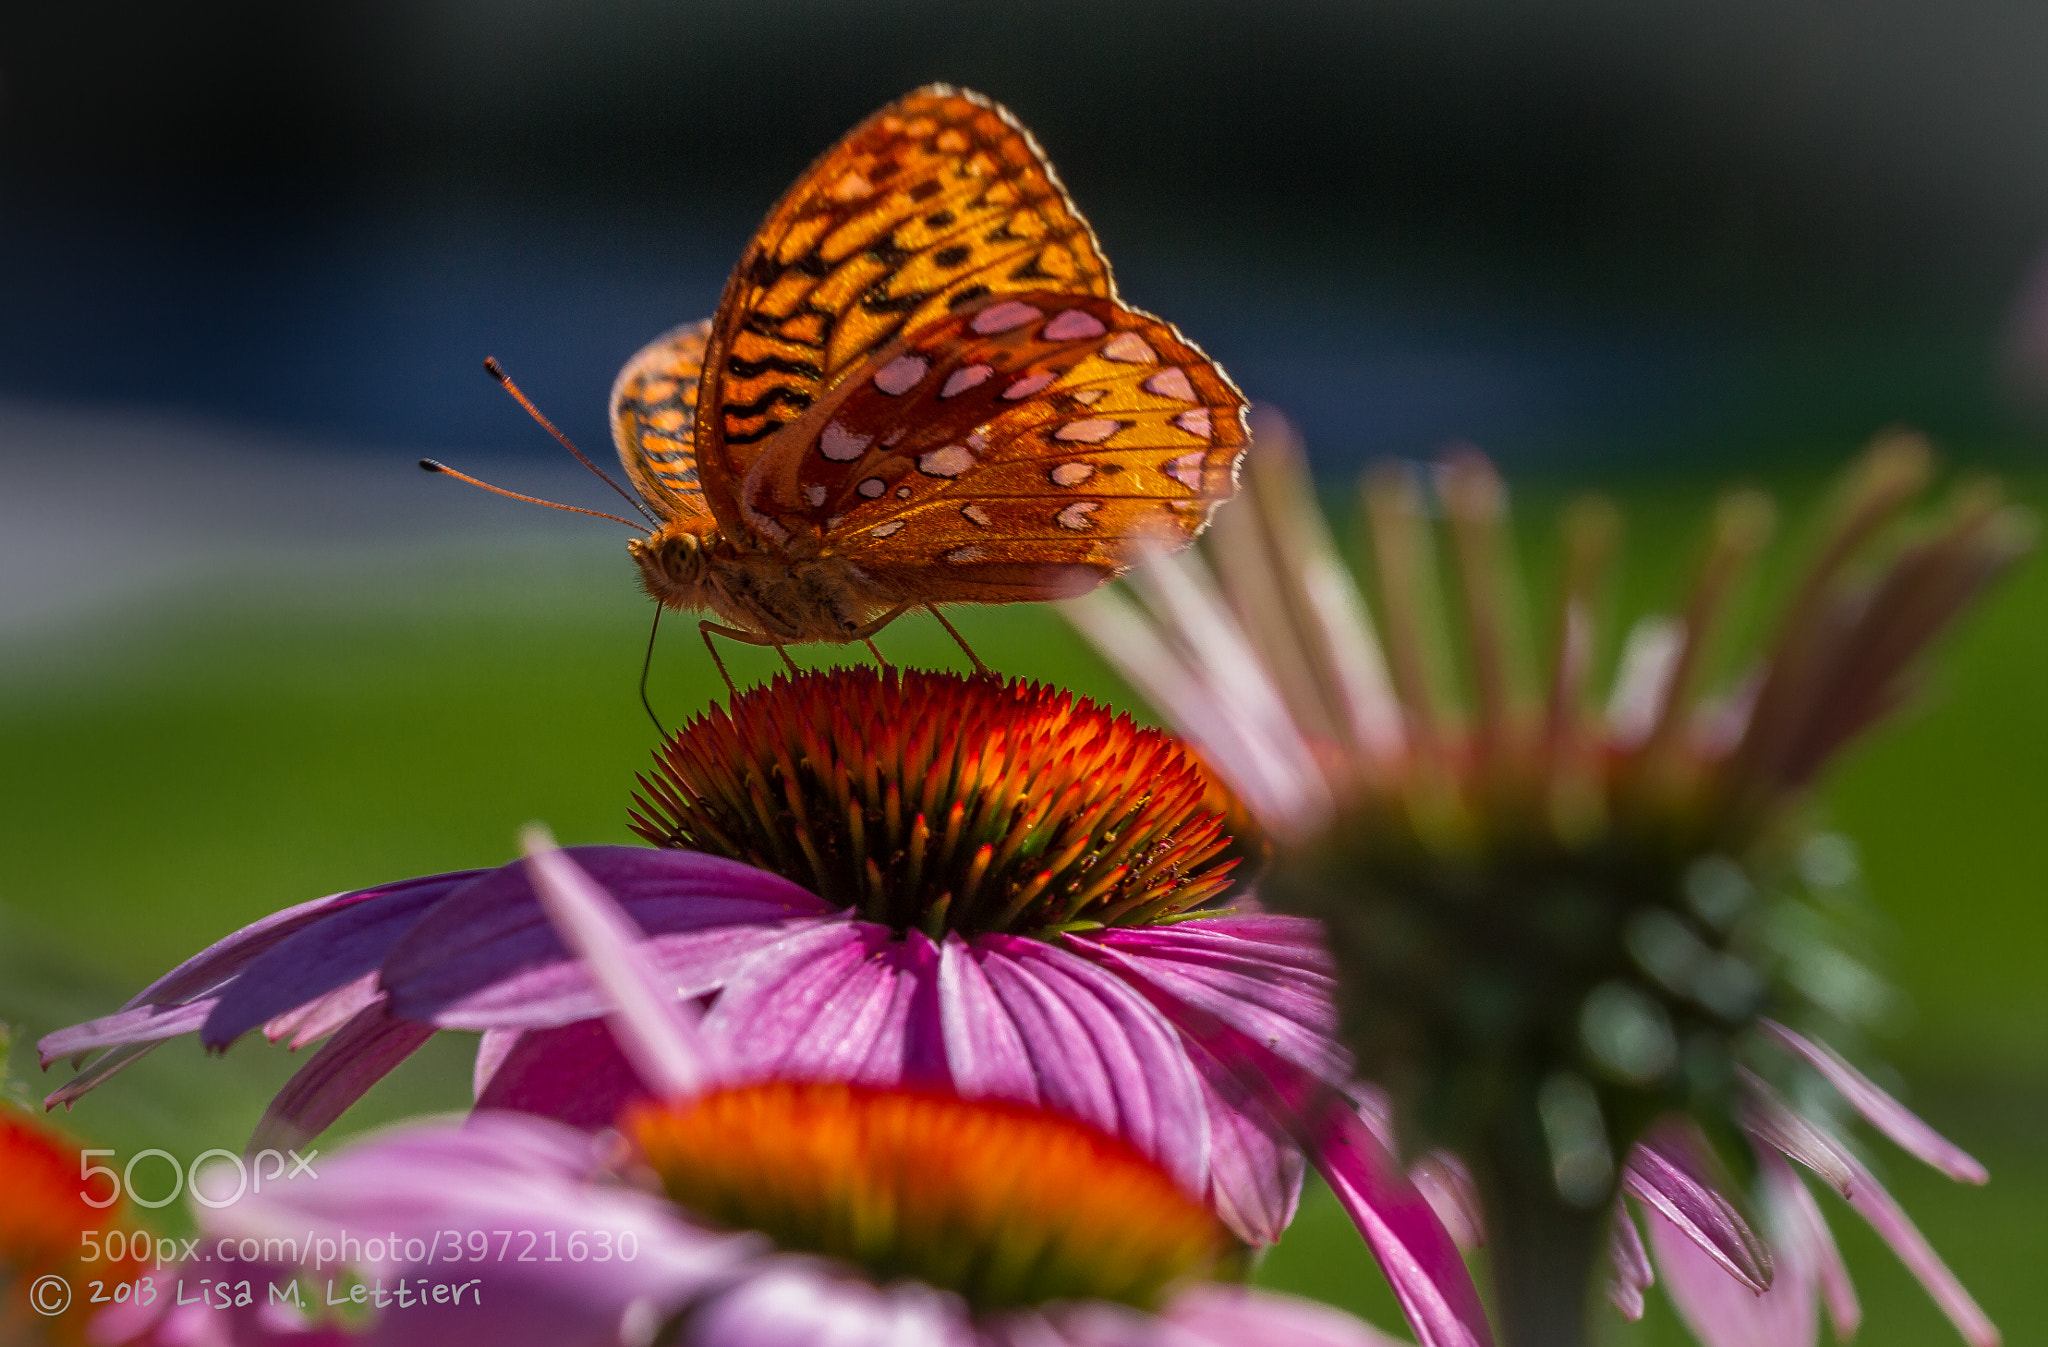 Photograph Butterfly & Cone Flowers by Lisa Lettieri on 500px